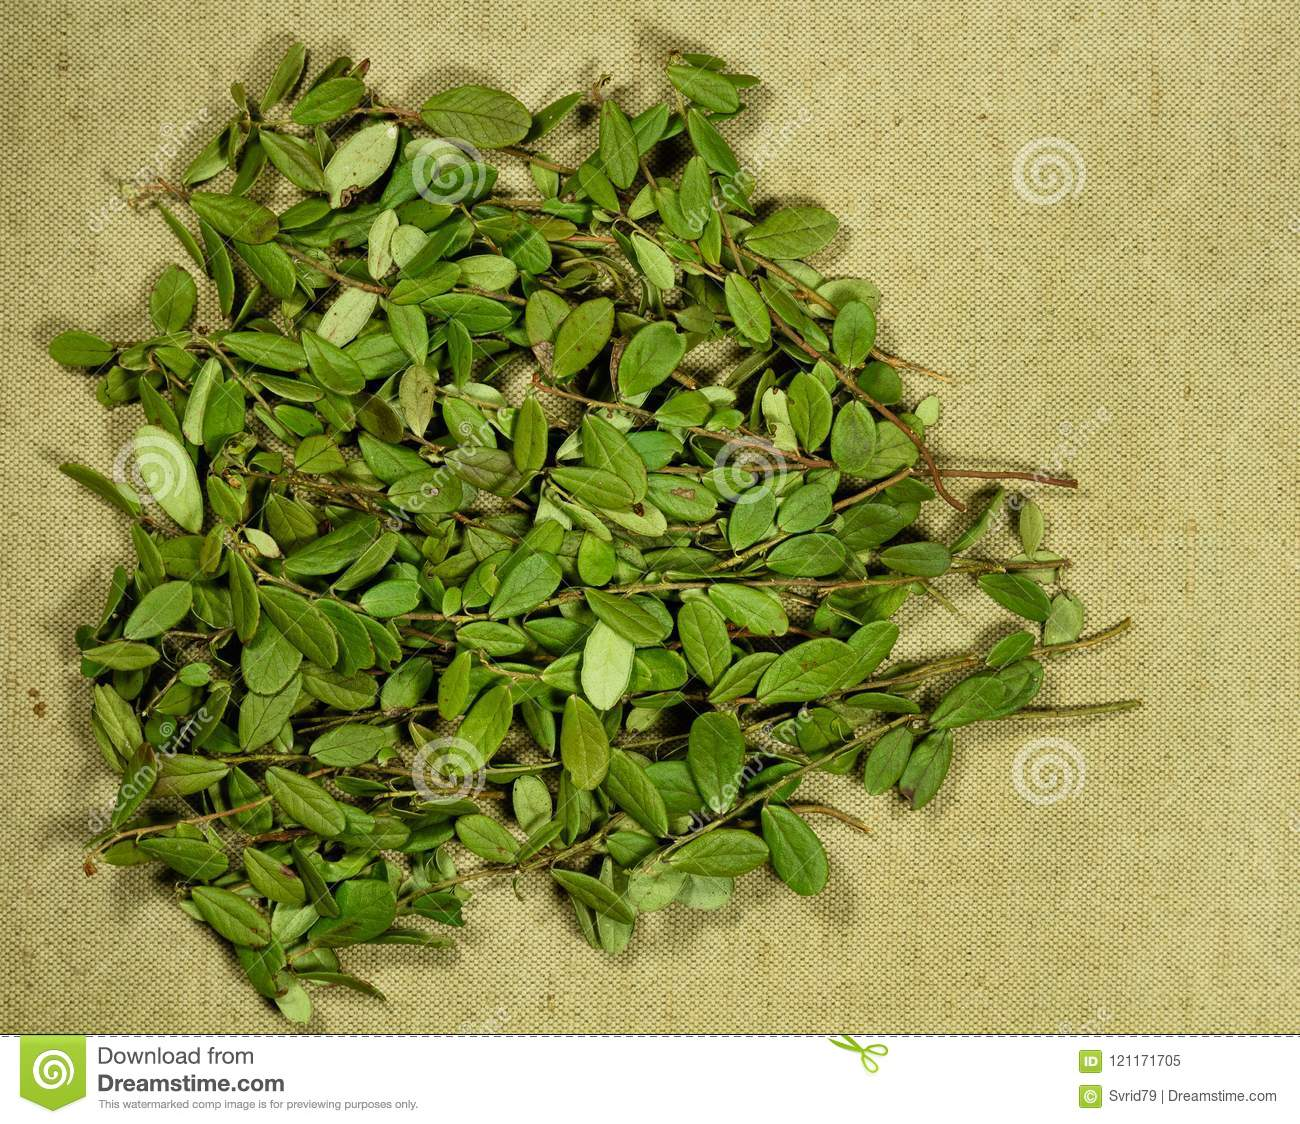 Lingonberry leaves: application in traditional medicine 42